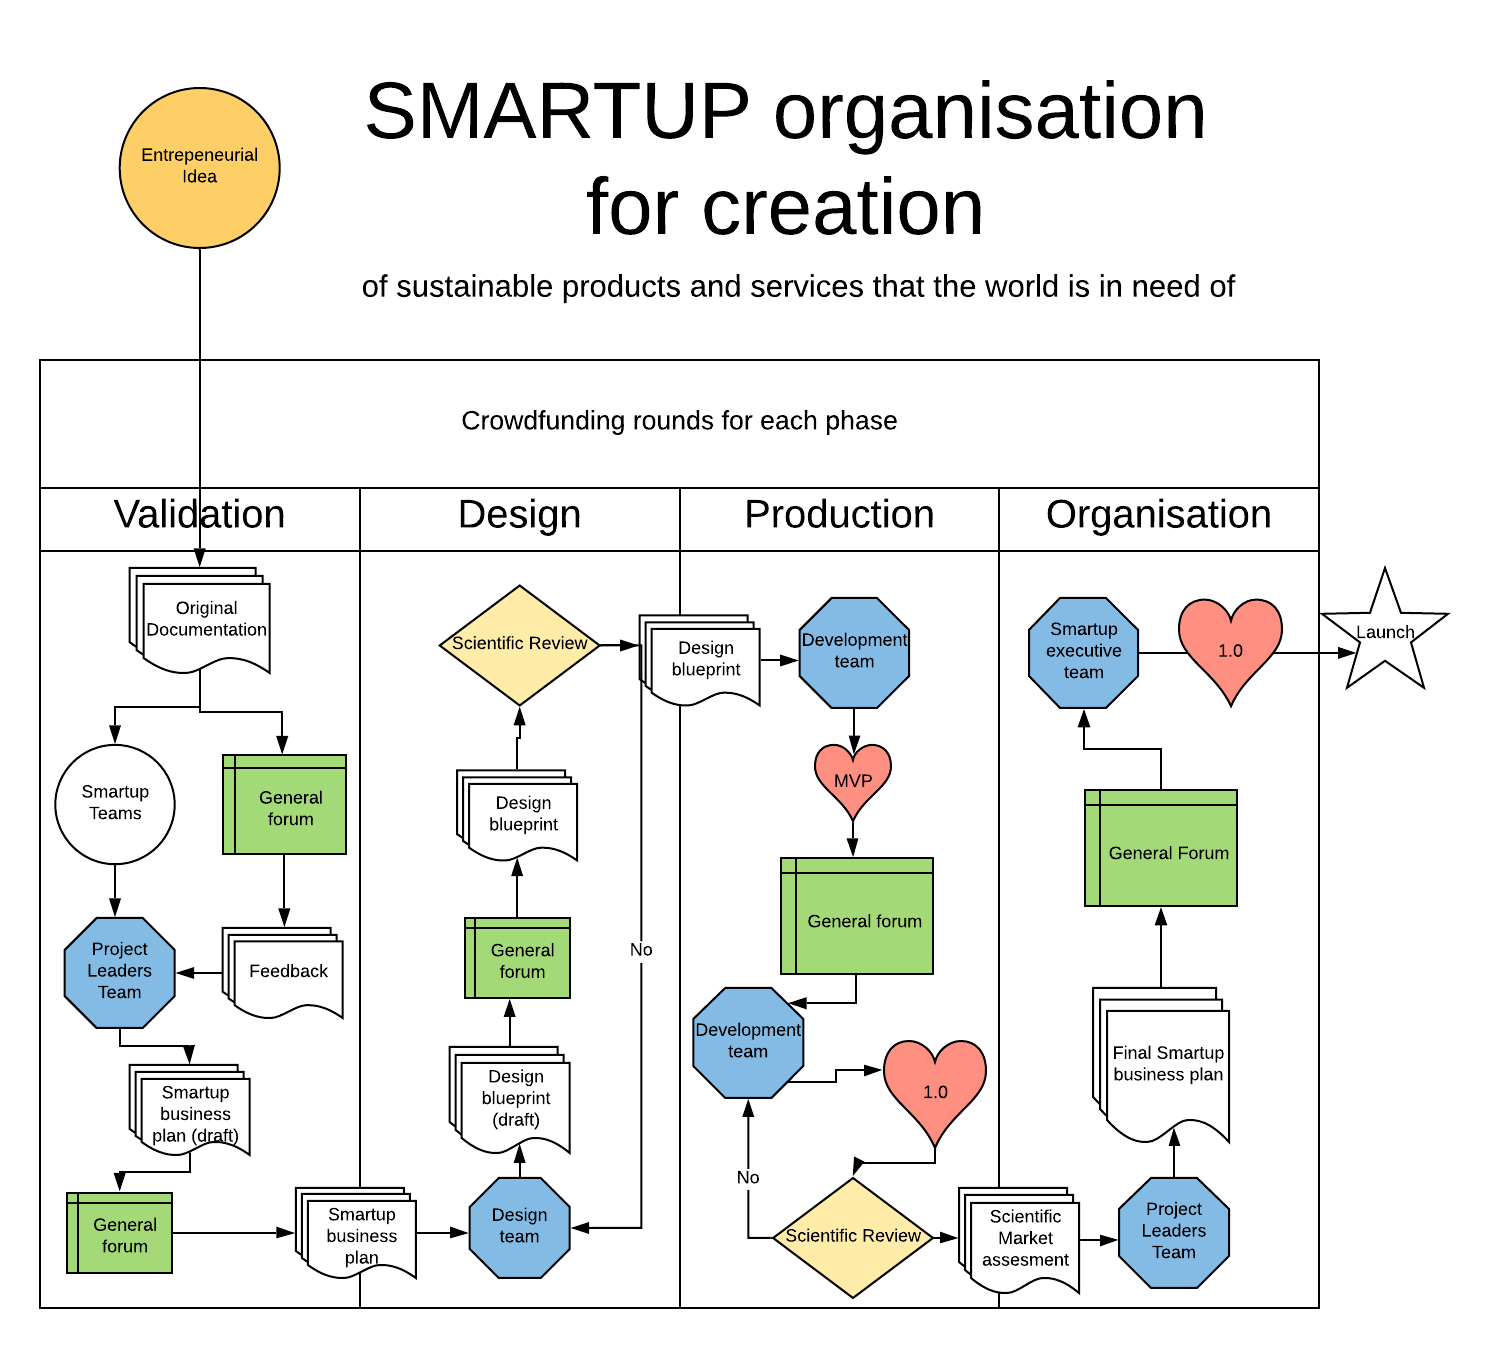 FLOWCHART 1: Smartup overview THE 4 PHASES OF CREATION